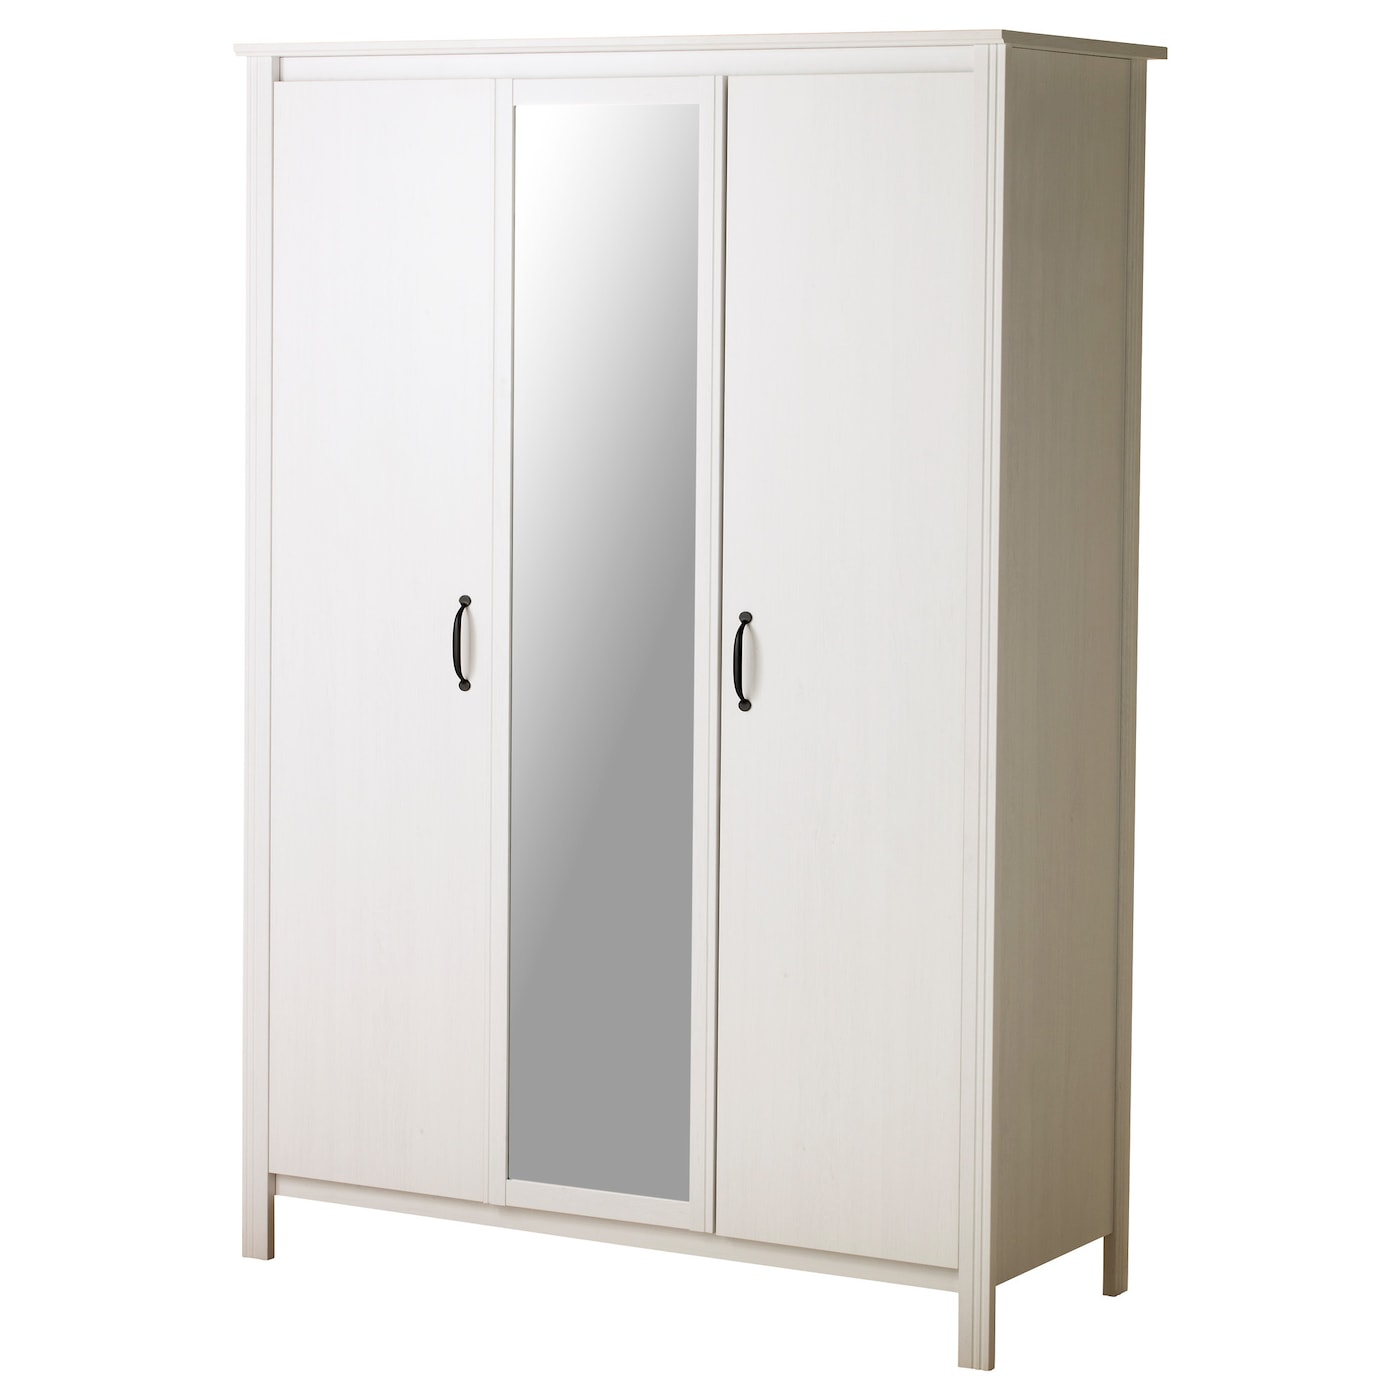 IKEA BRUSALI wardrobe with 3 doors Adjustable hinges ensure that the doors hang straight.